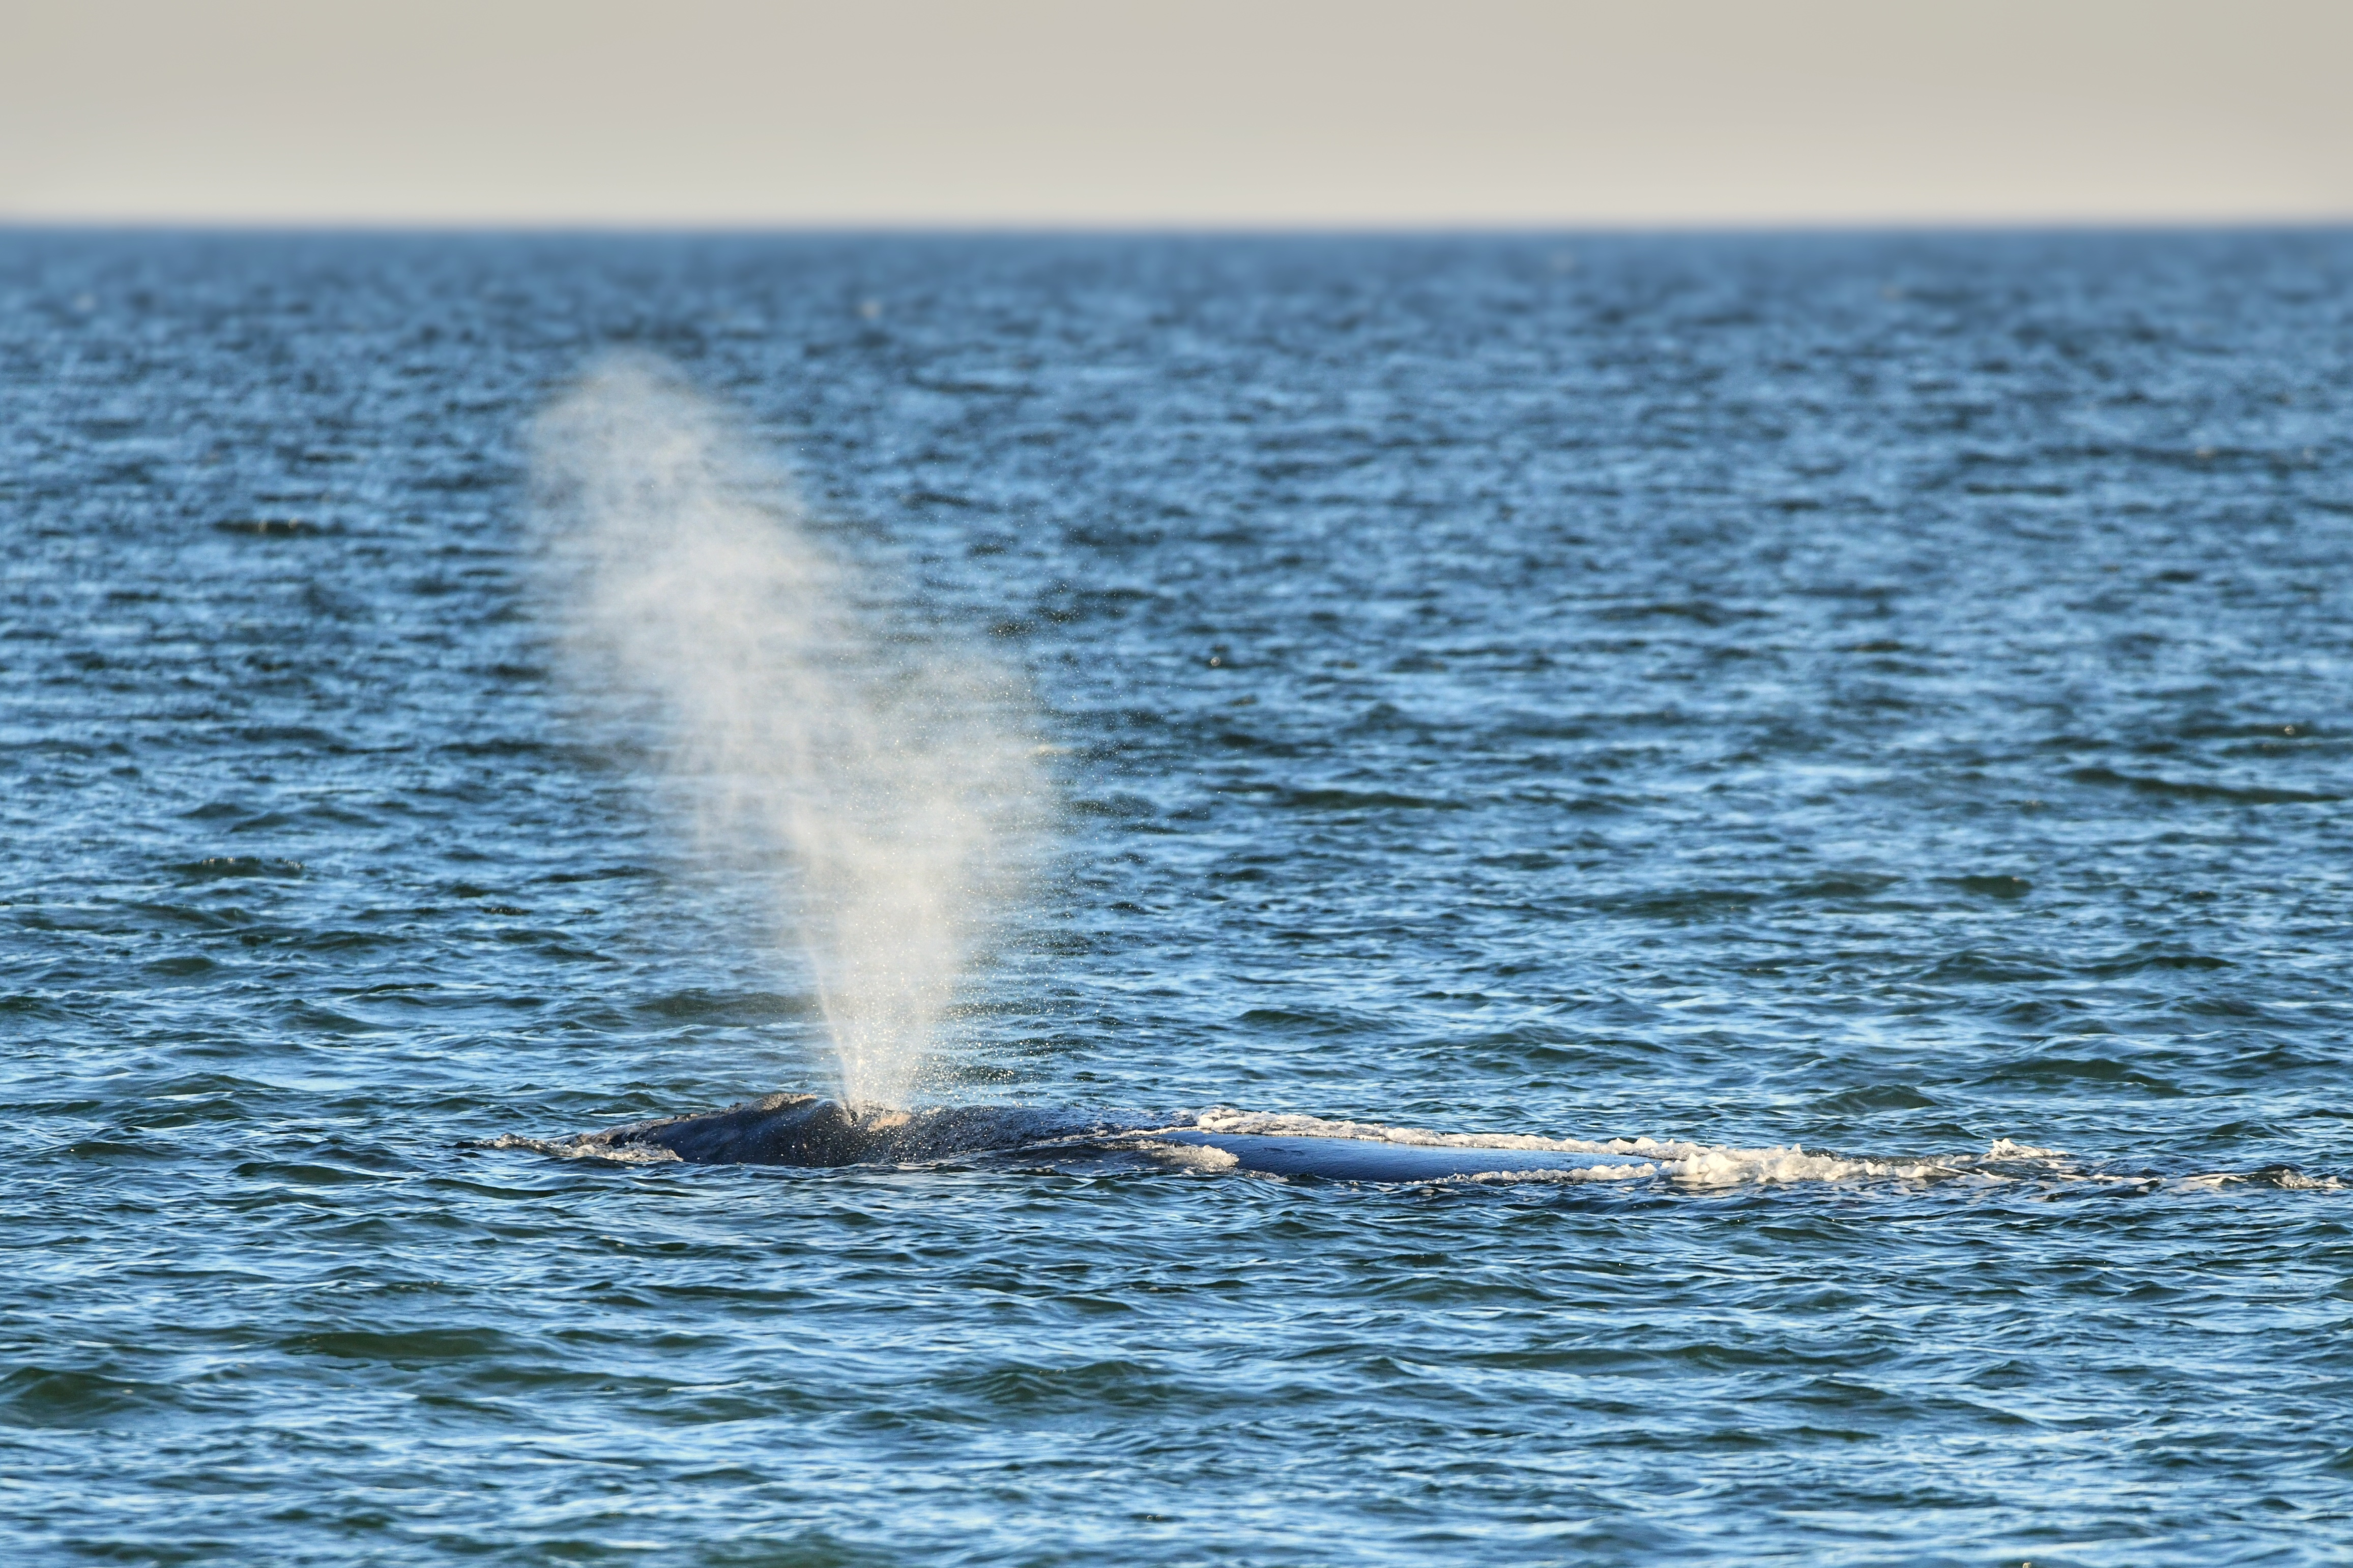 Right whales have arrived off of Amelia Island. More than 30 right whales have been spotted this fall and winter.